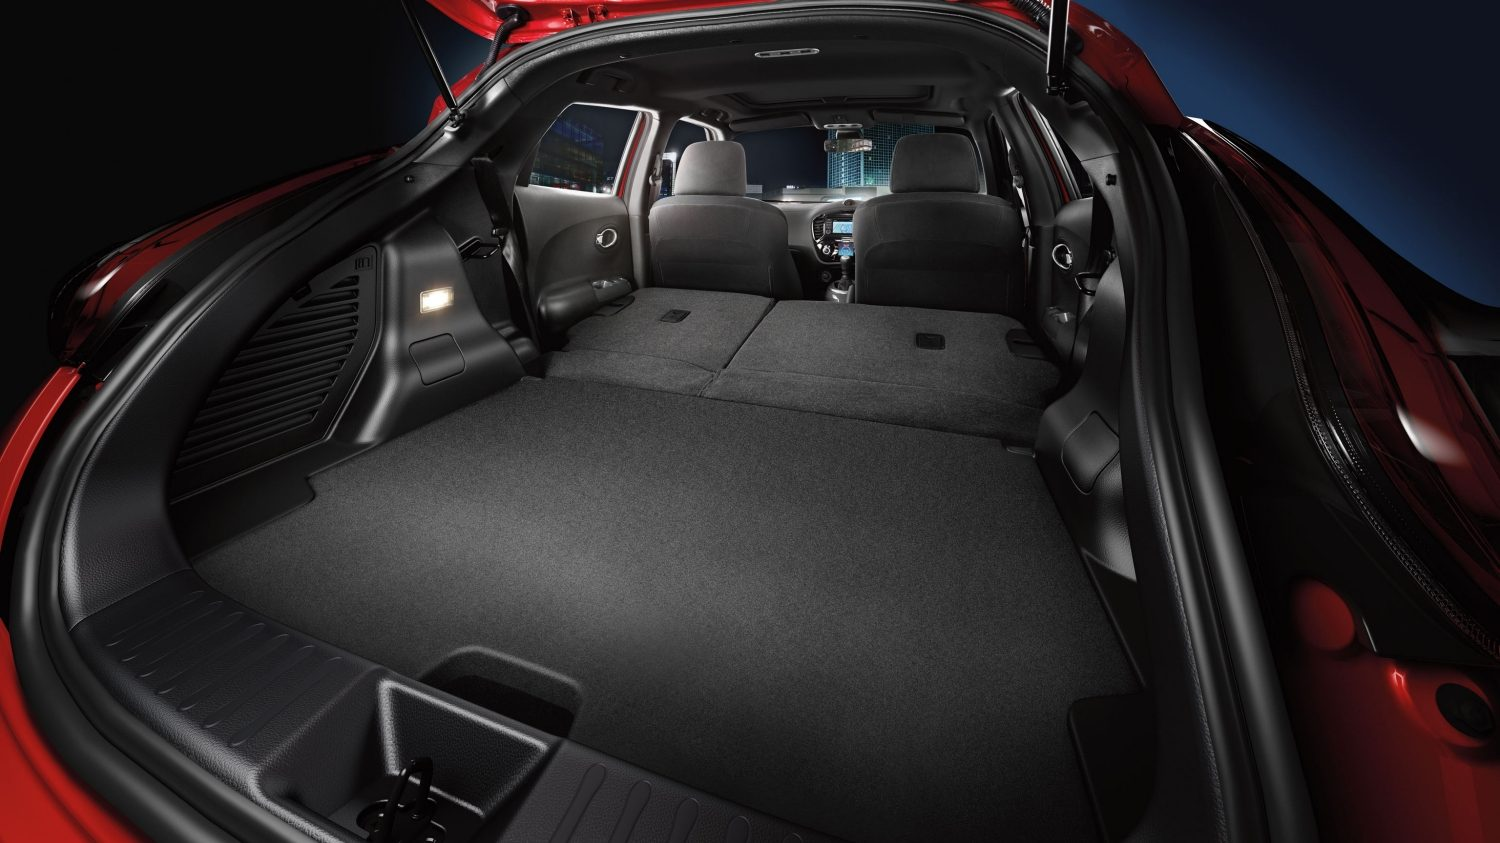 Compact & mini SUV features - Small SUV storage space | Nissan Juke